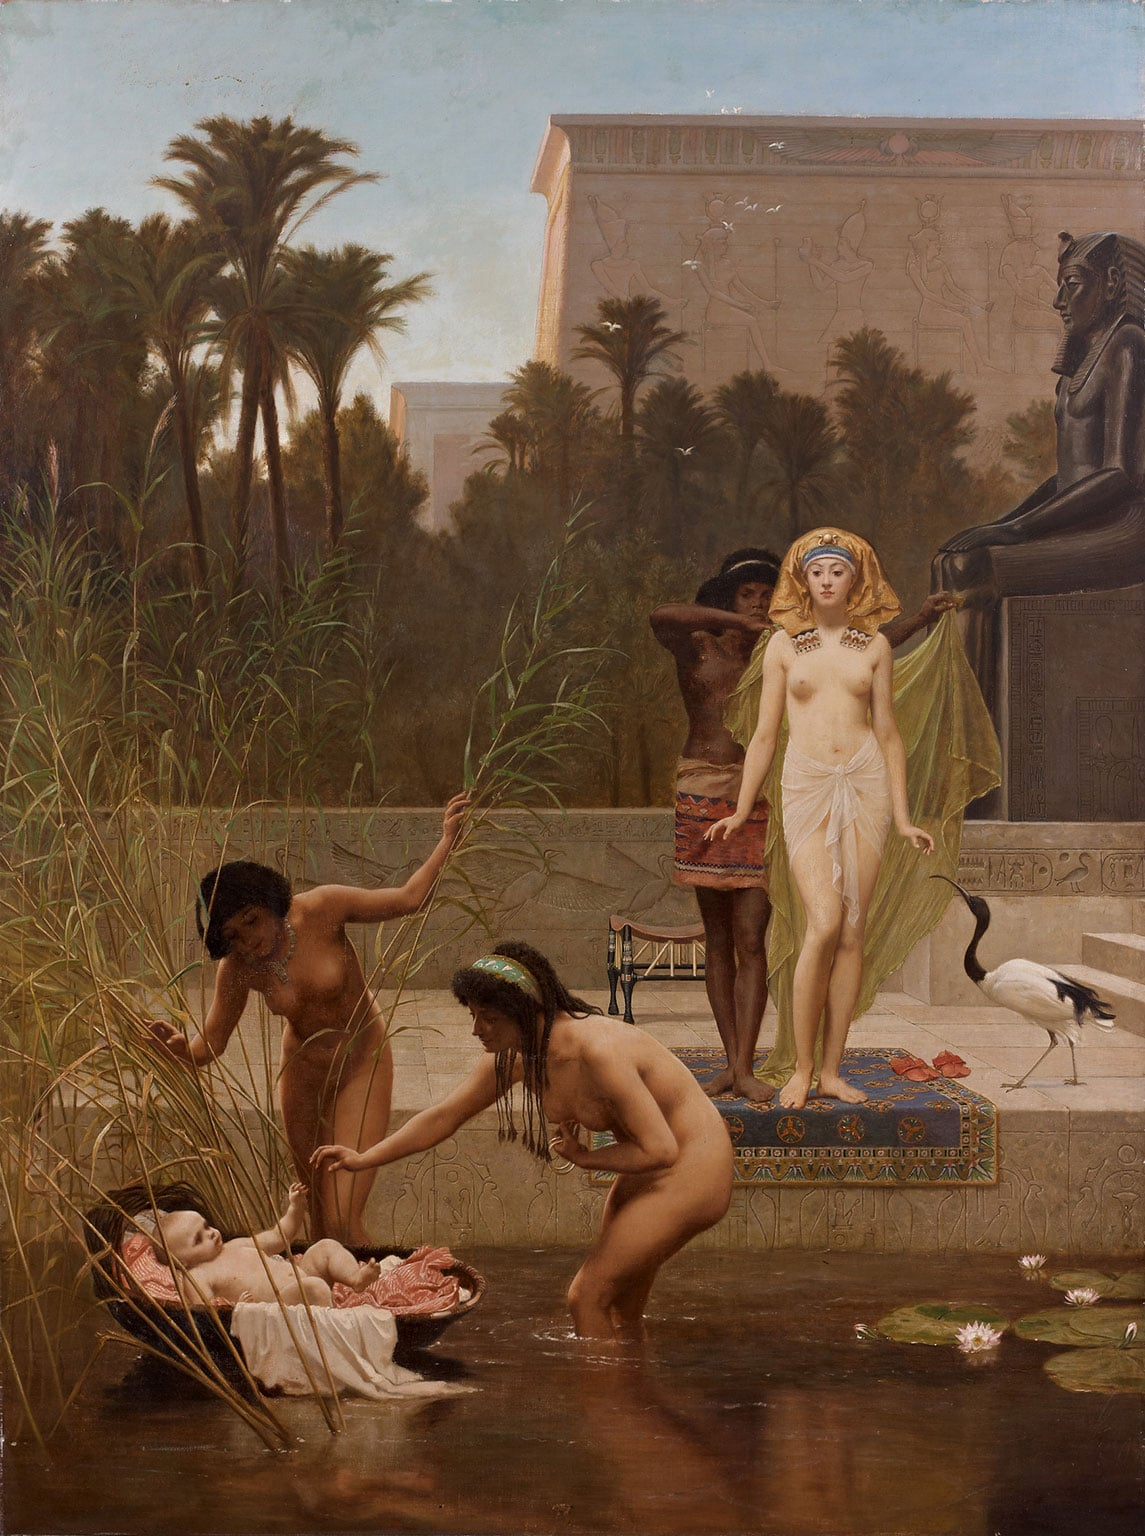 Frederick Goodall, The Finding of Moses, 1885